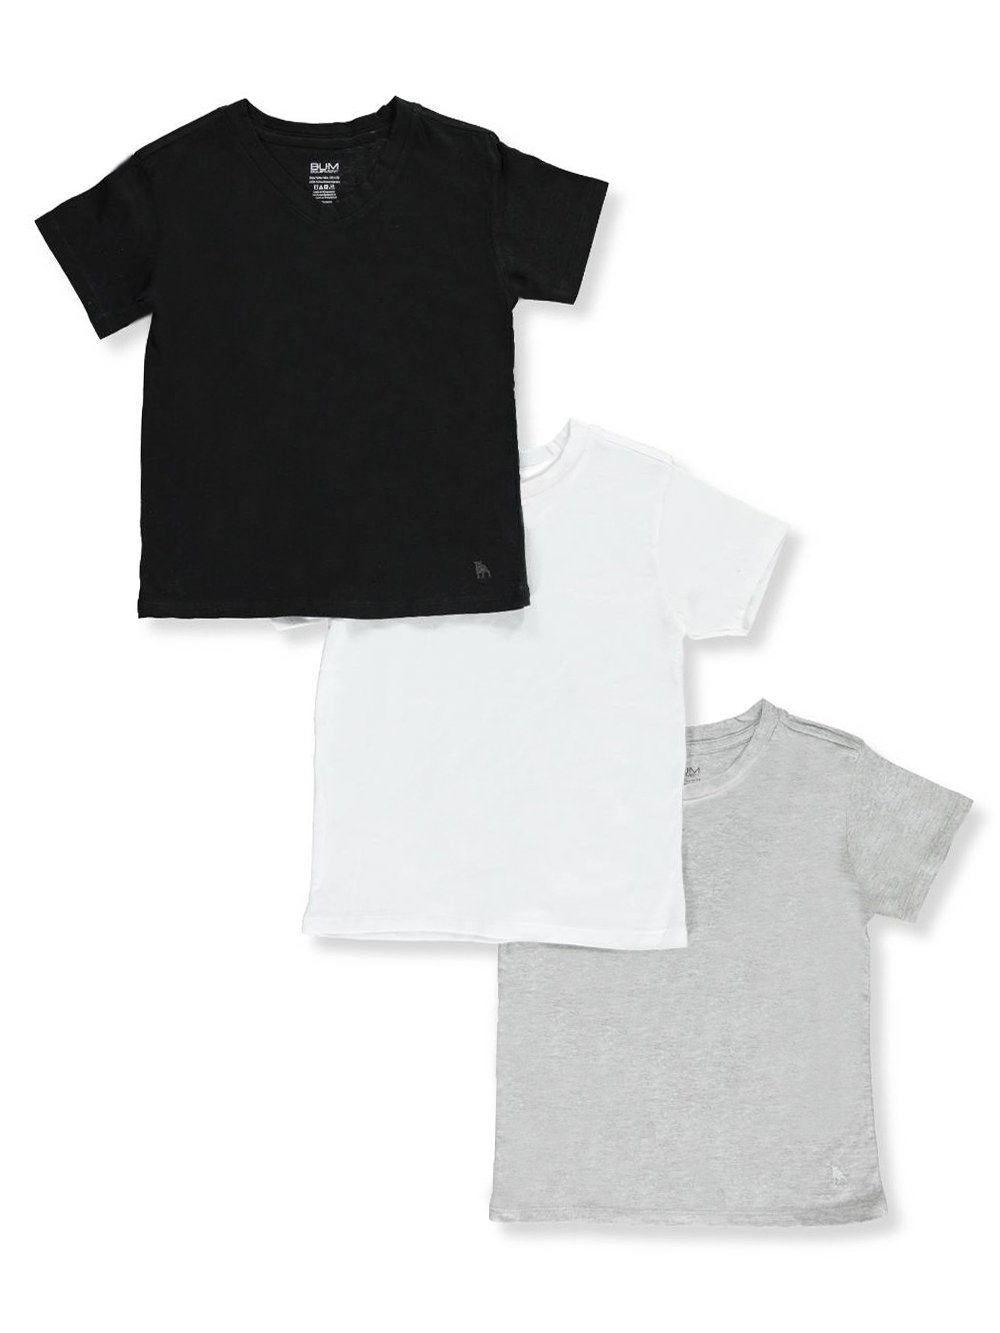 BUM Equipment Big Boys' 3-Pack Crew-Neck T-Shirts